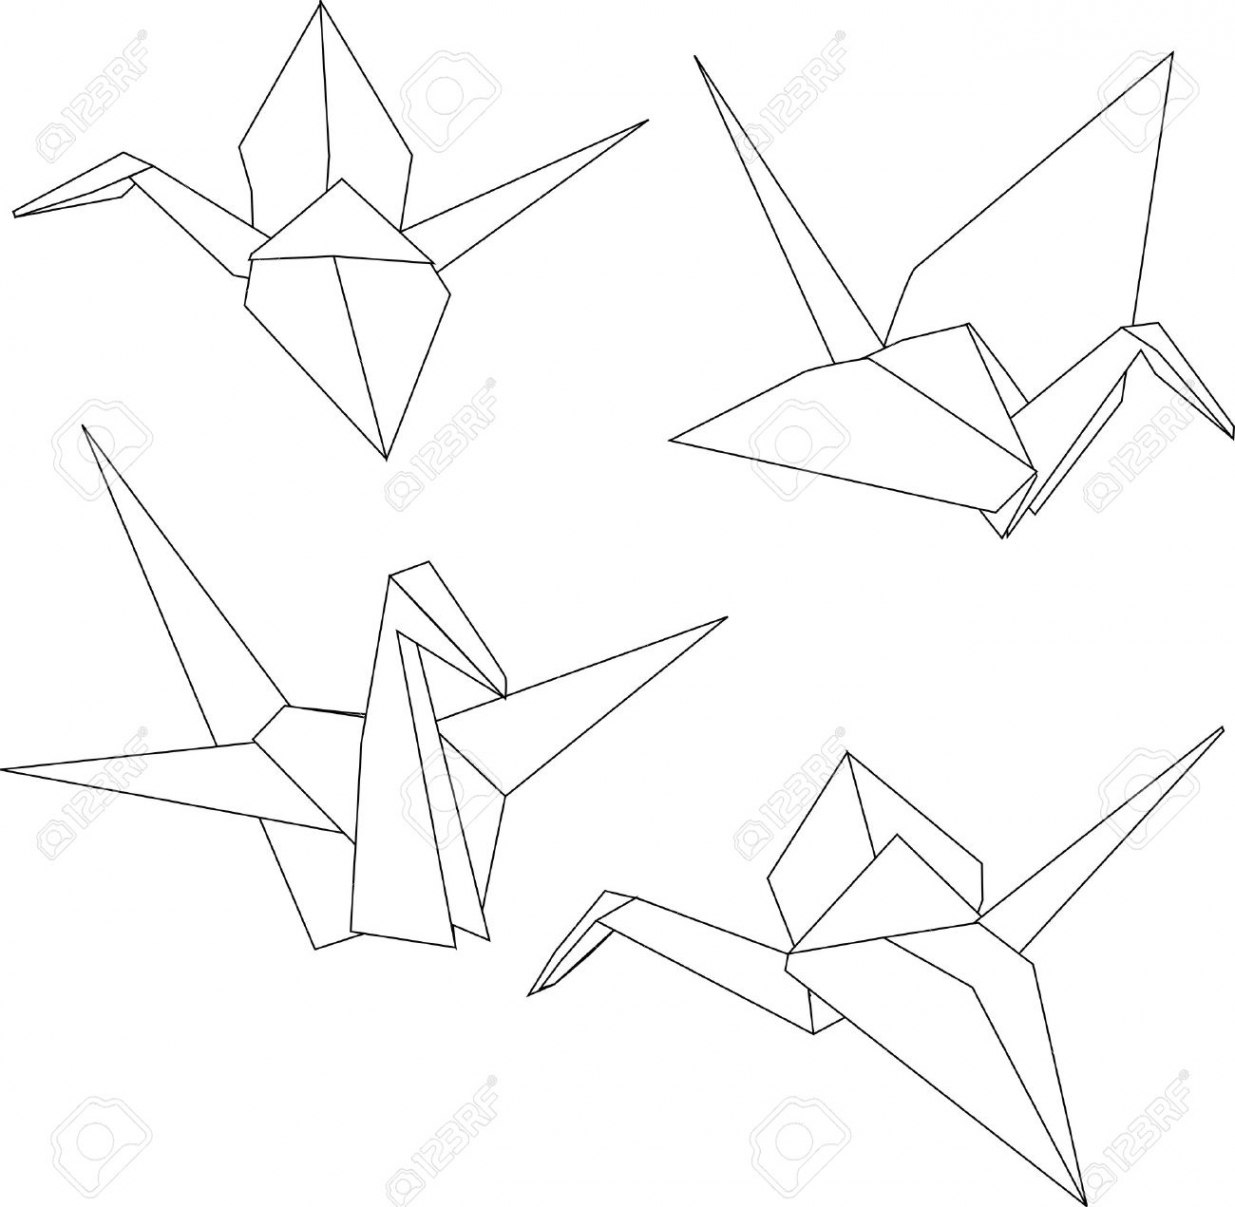 1235x1207 Japanese Origami Paper Cranes Royalty Free Cliparts With Regard